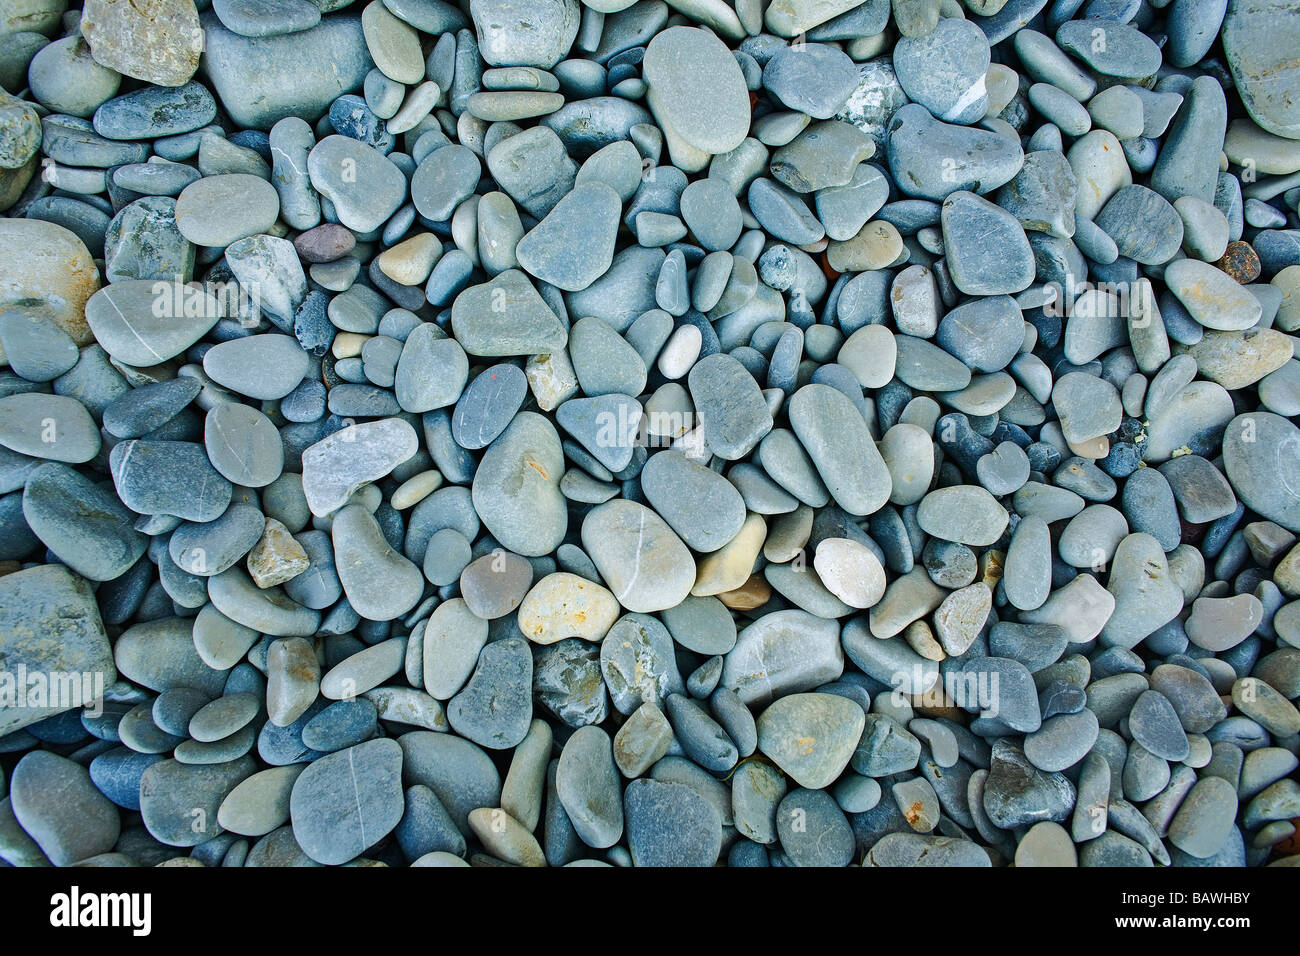 Pebbles on the beach - Stock Image